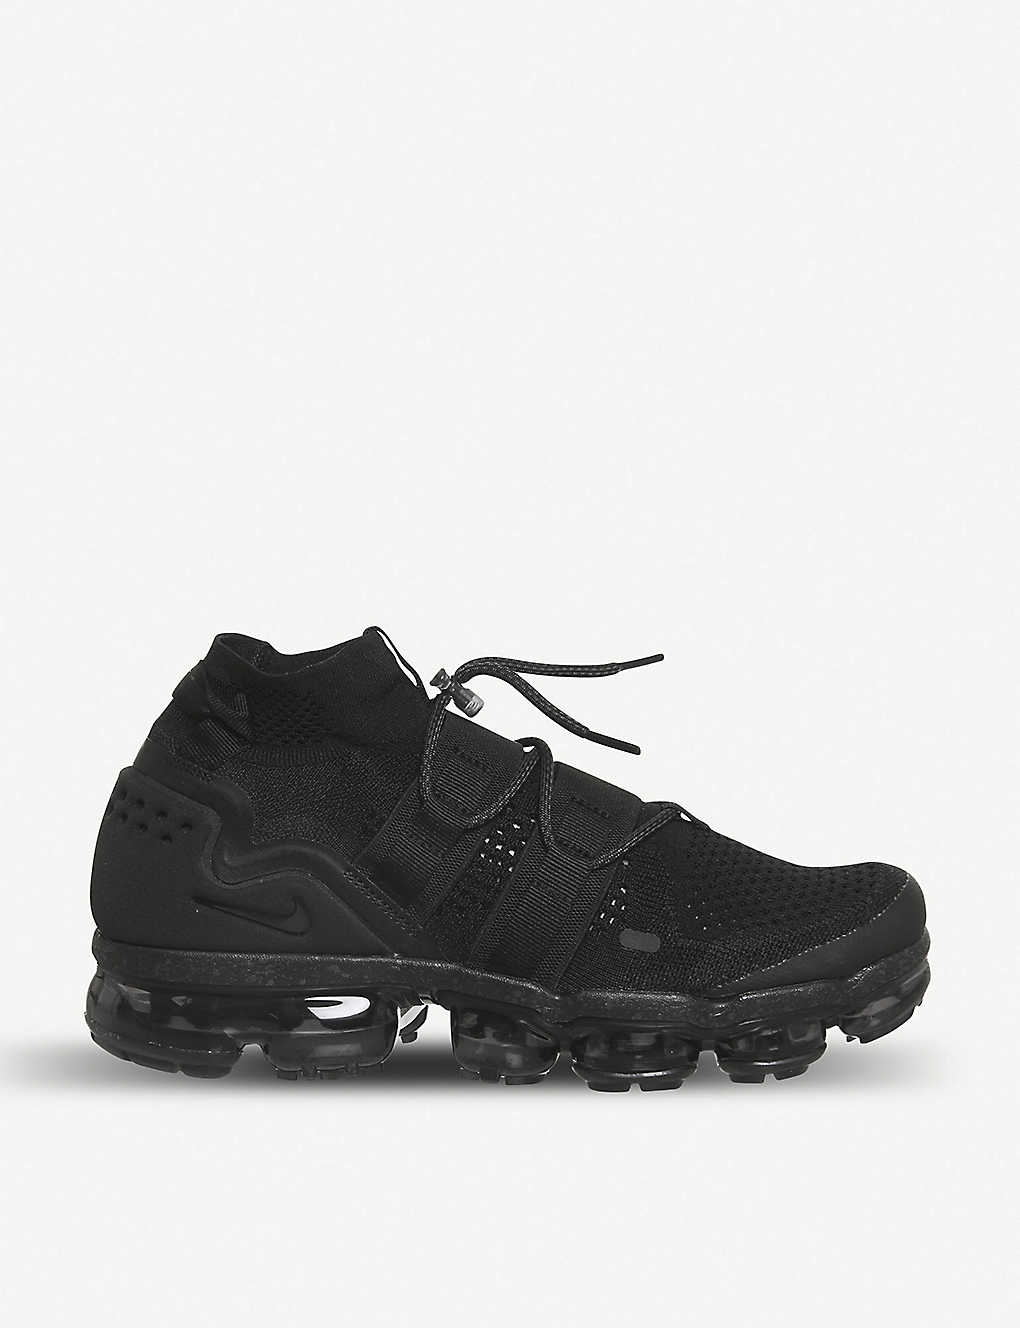 9cf6163bba air max vapormax flyknit utility nz|Free delivery!